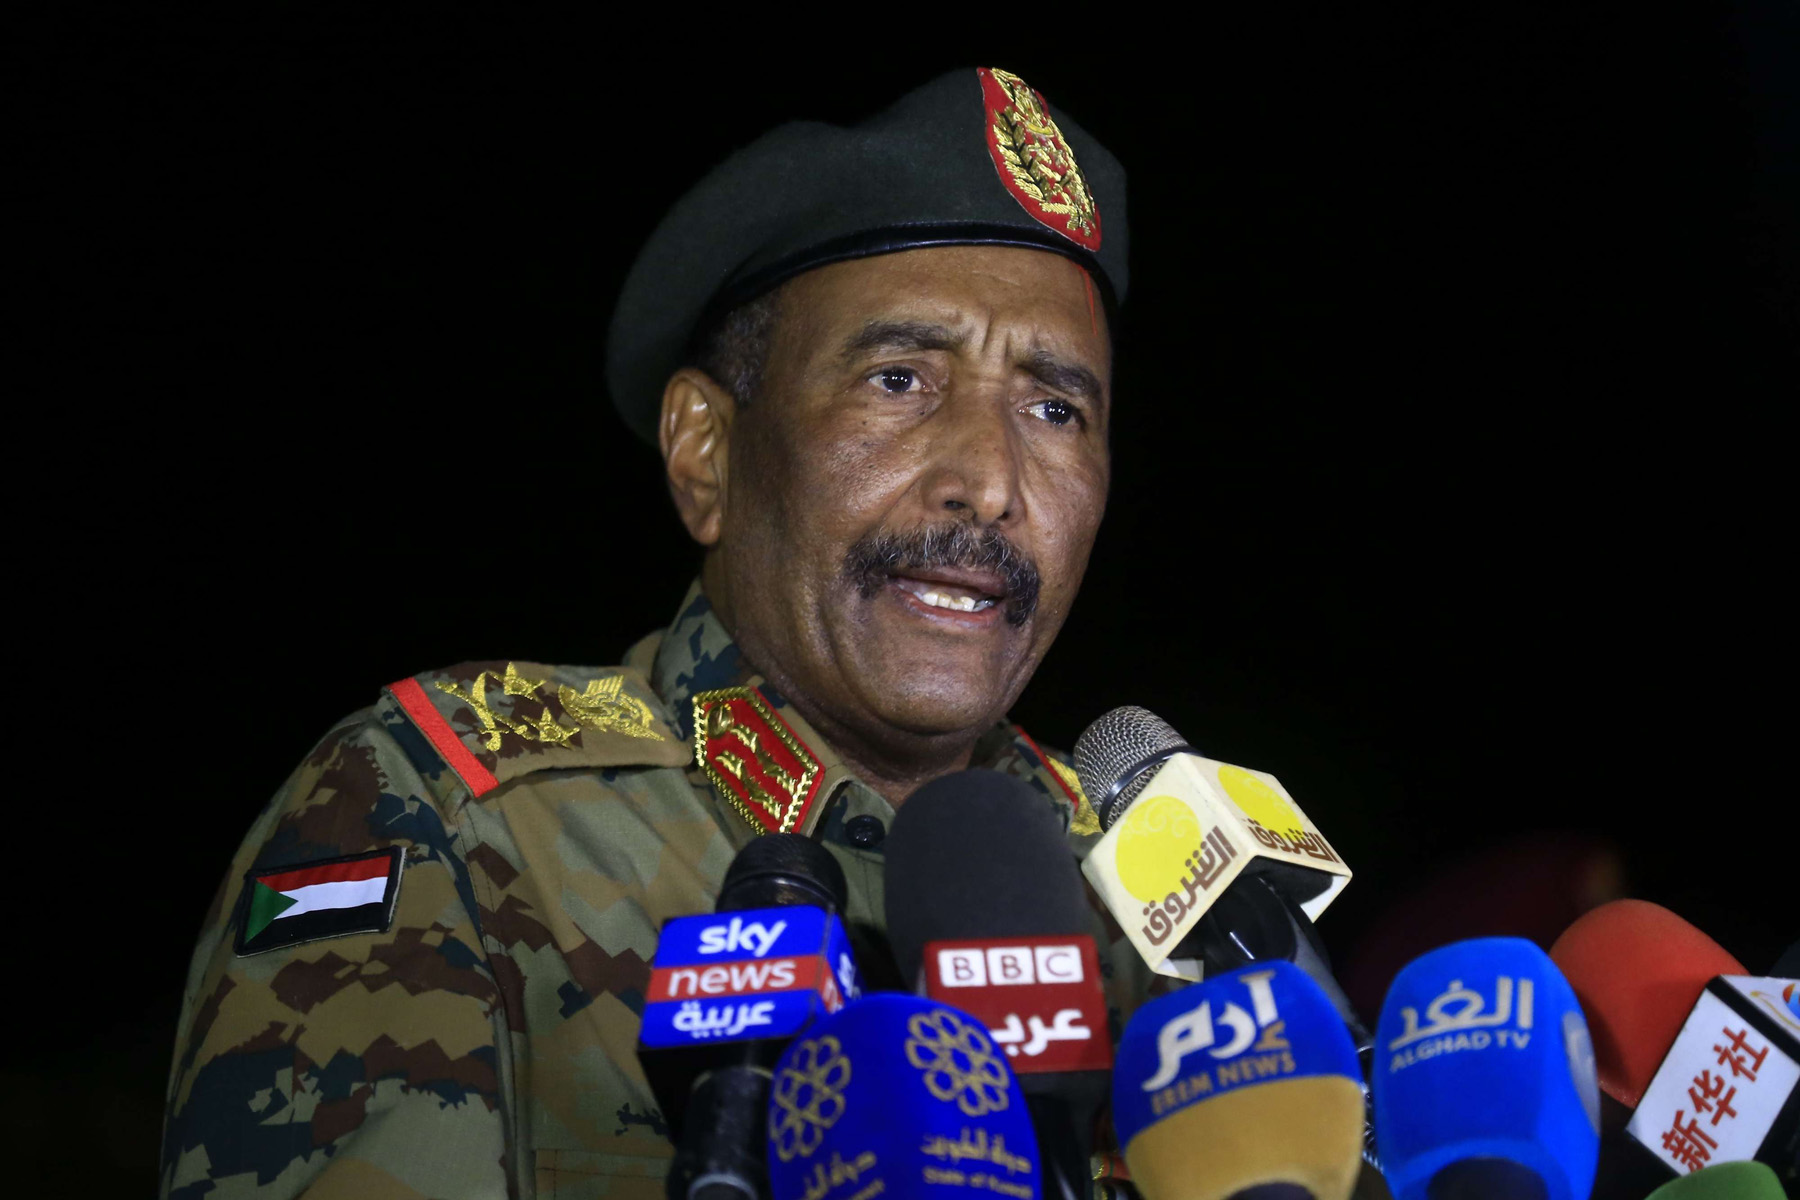 President of the Sudanese Transitional Council, General Abdel Fattah al-Burhan. (AFP)